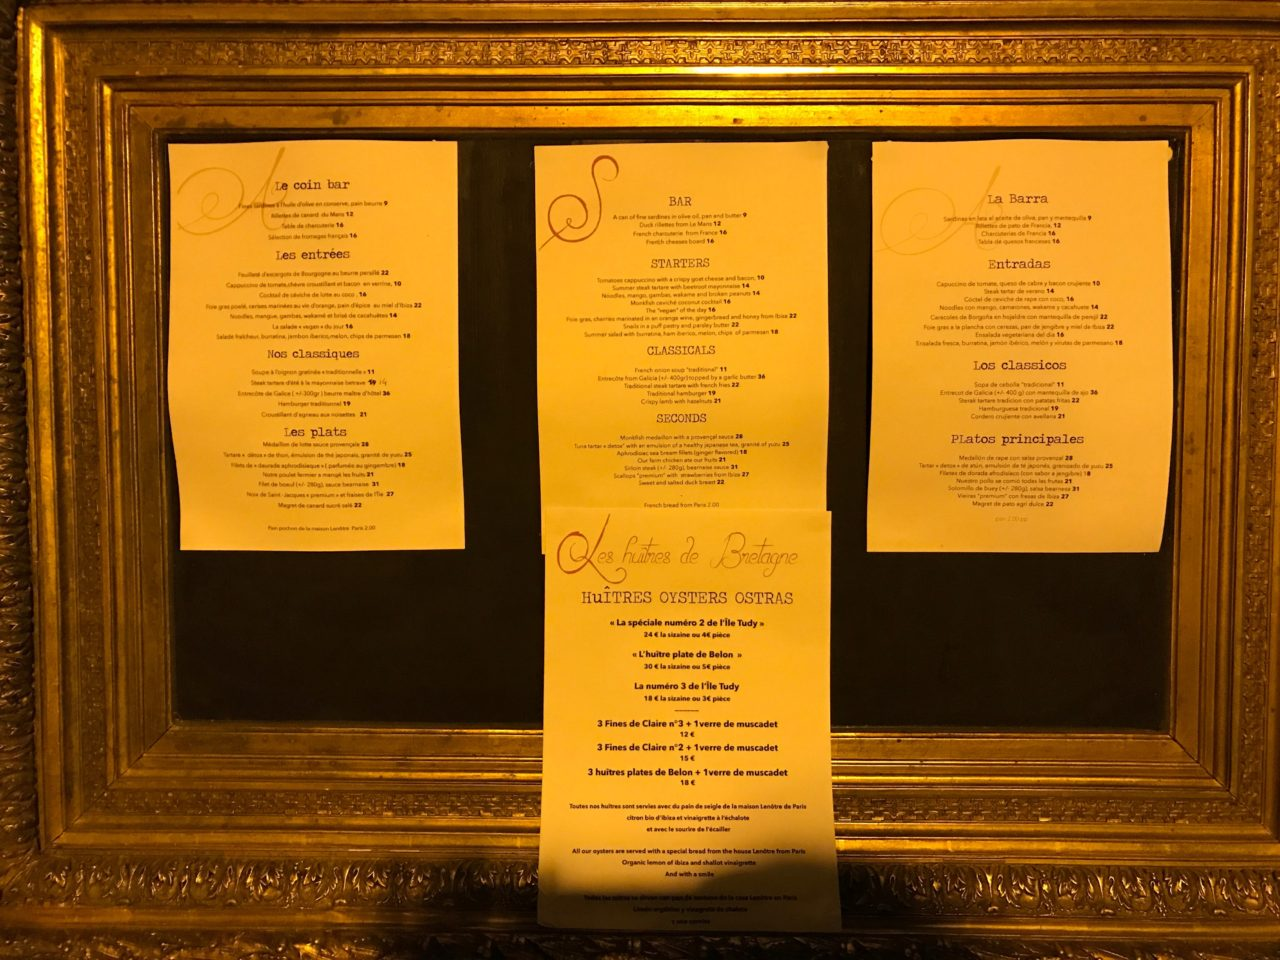 Restaurant Dinner Menu In A Golden Frame